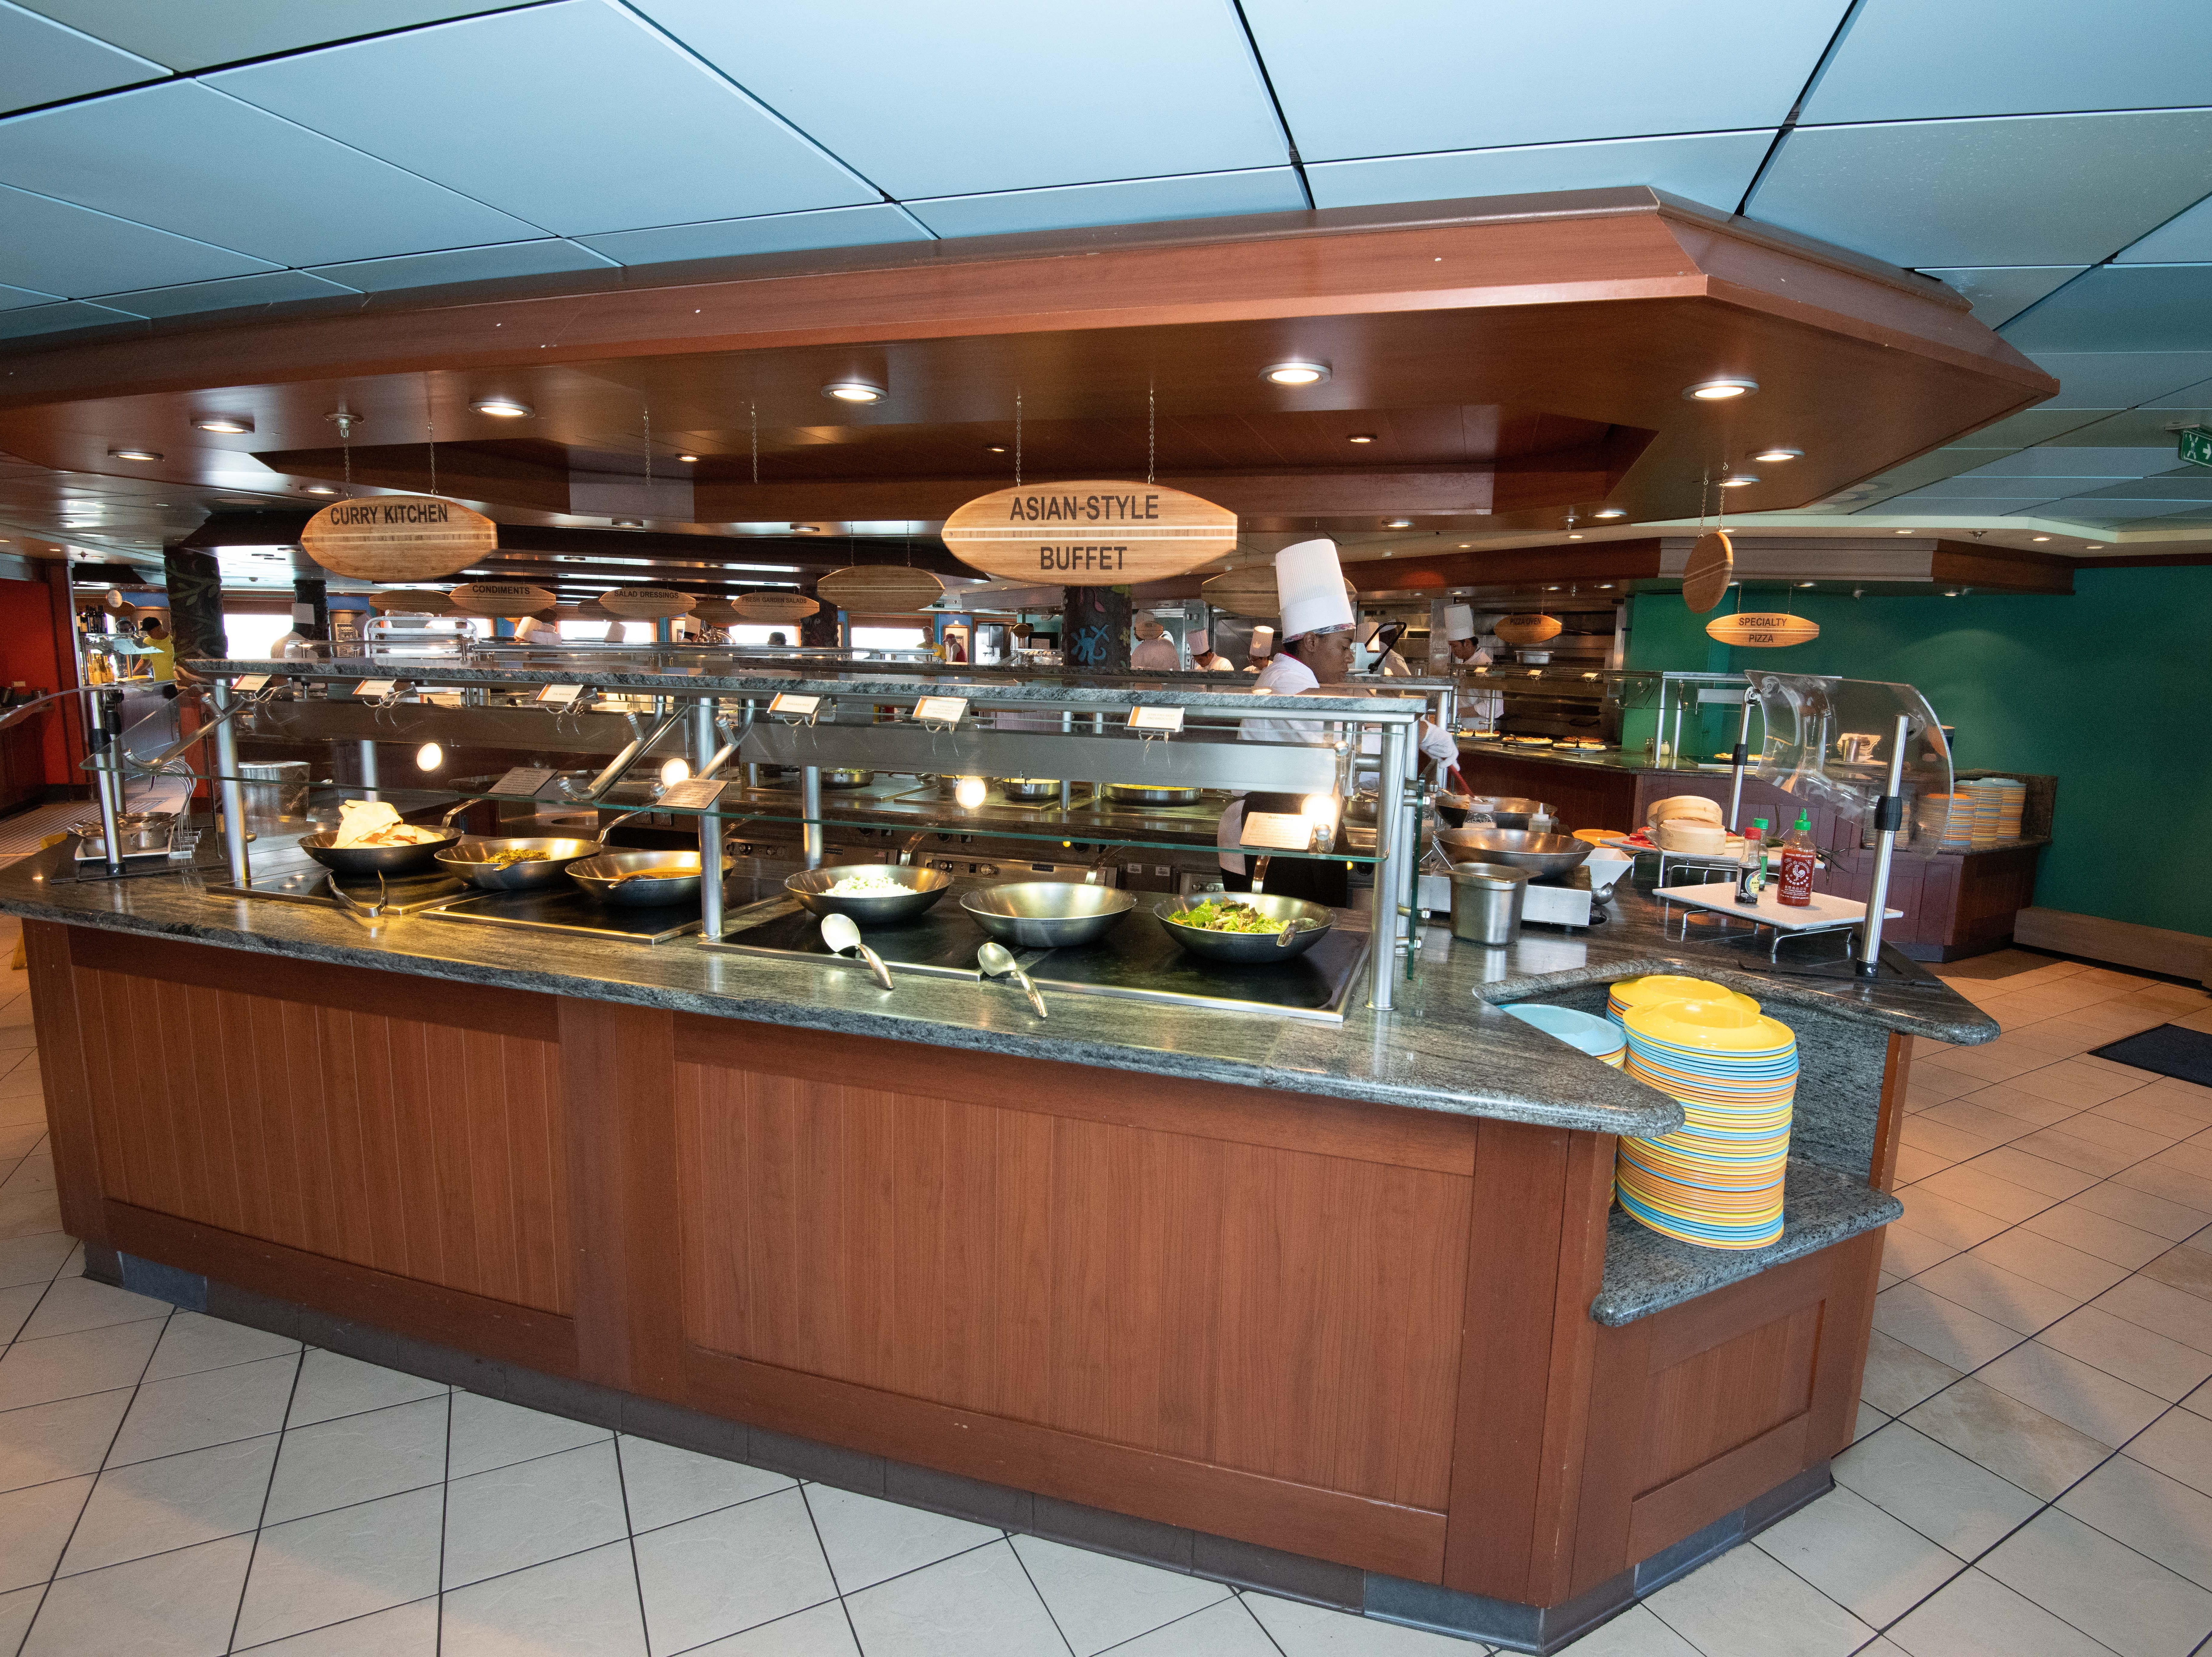 The Aloha Cafe offers a wide range of cuisines during mealtimes including everything from American-style burgers to Indian curries.